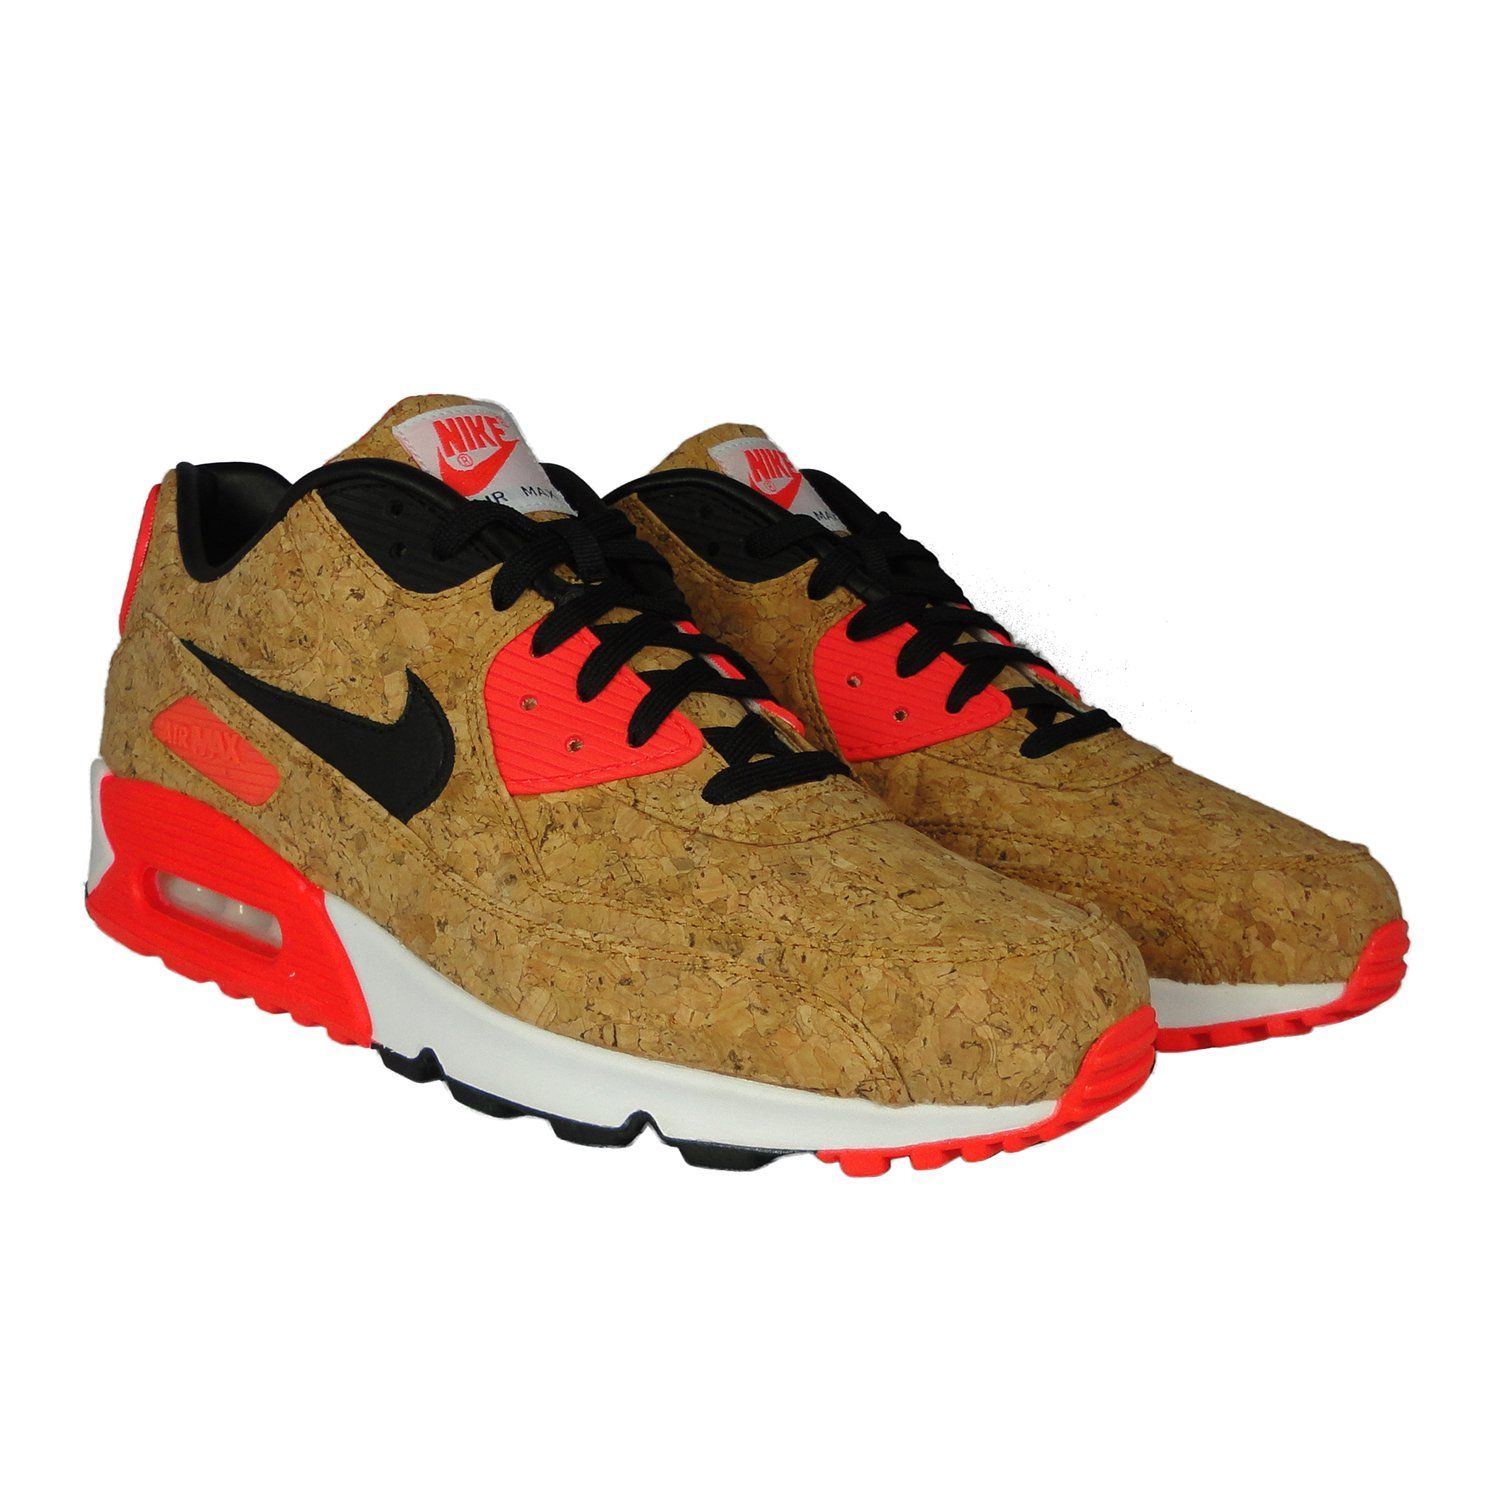 super popular 2b46e fafb1 nike air max 90 anniversary pack infrared The Flash LimeBlack-Hypr Jd- Infrared ...